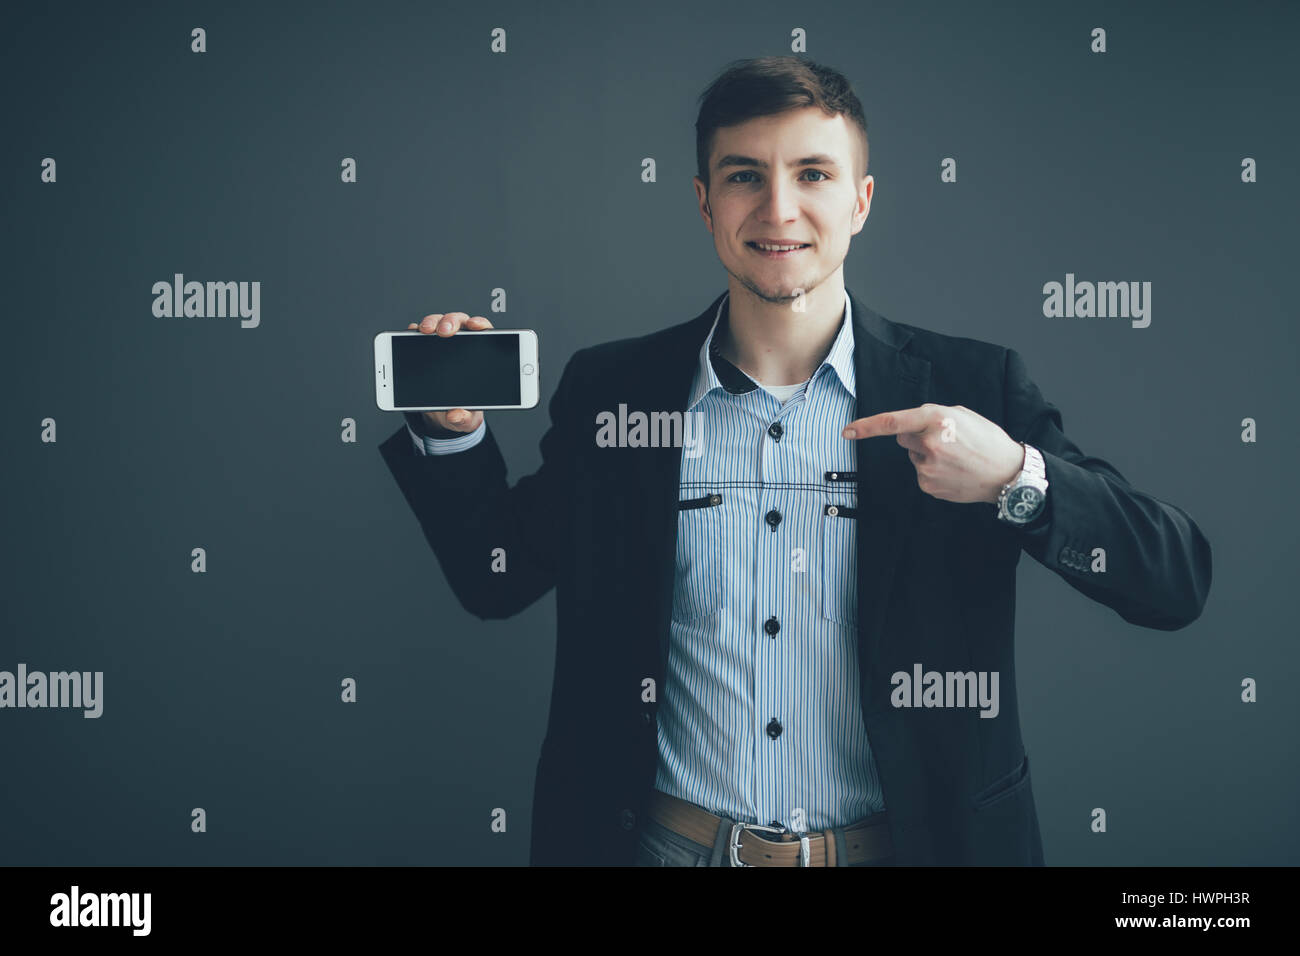 Businessman pointing finger on blank smartphone screen over black background - Stock Image